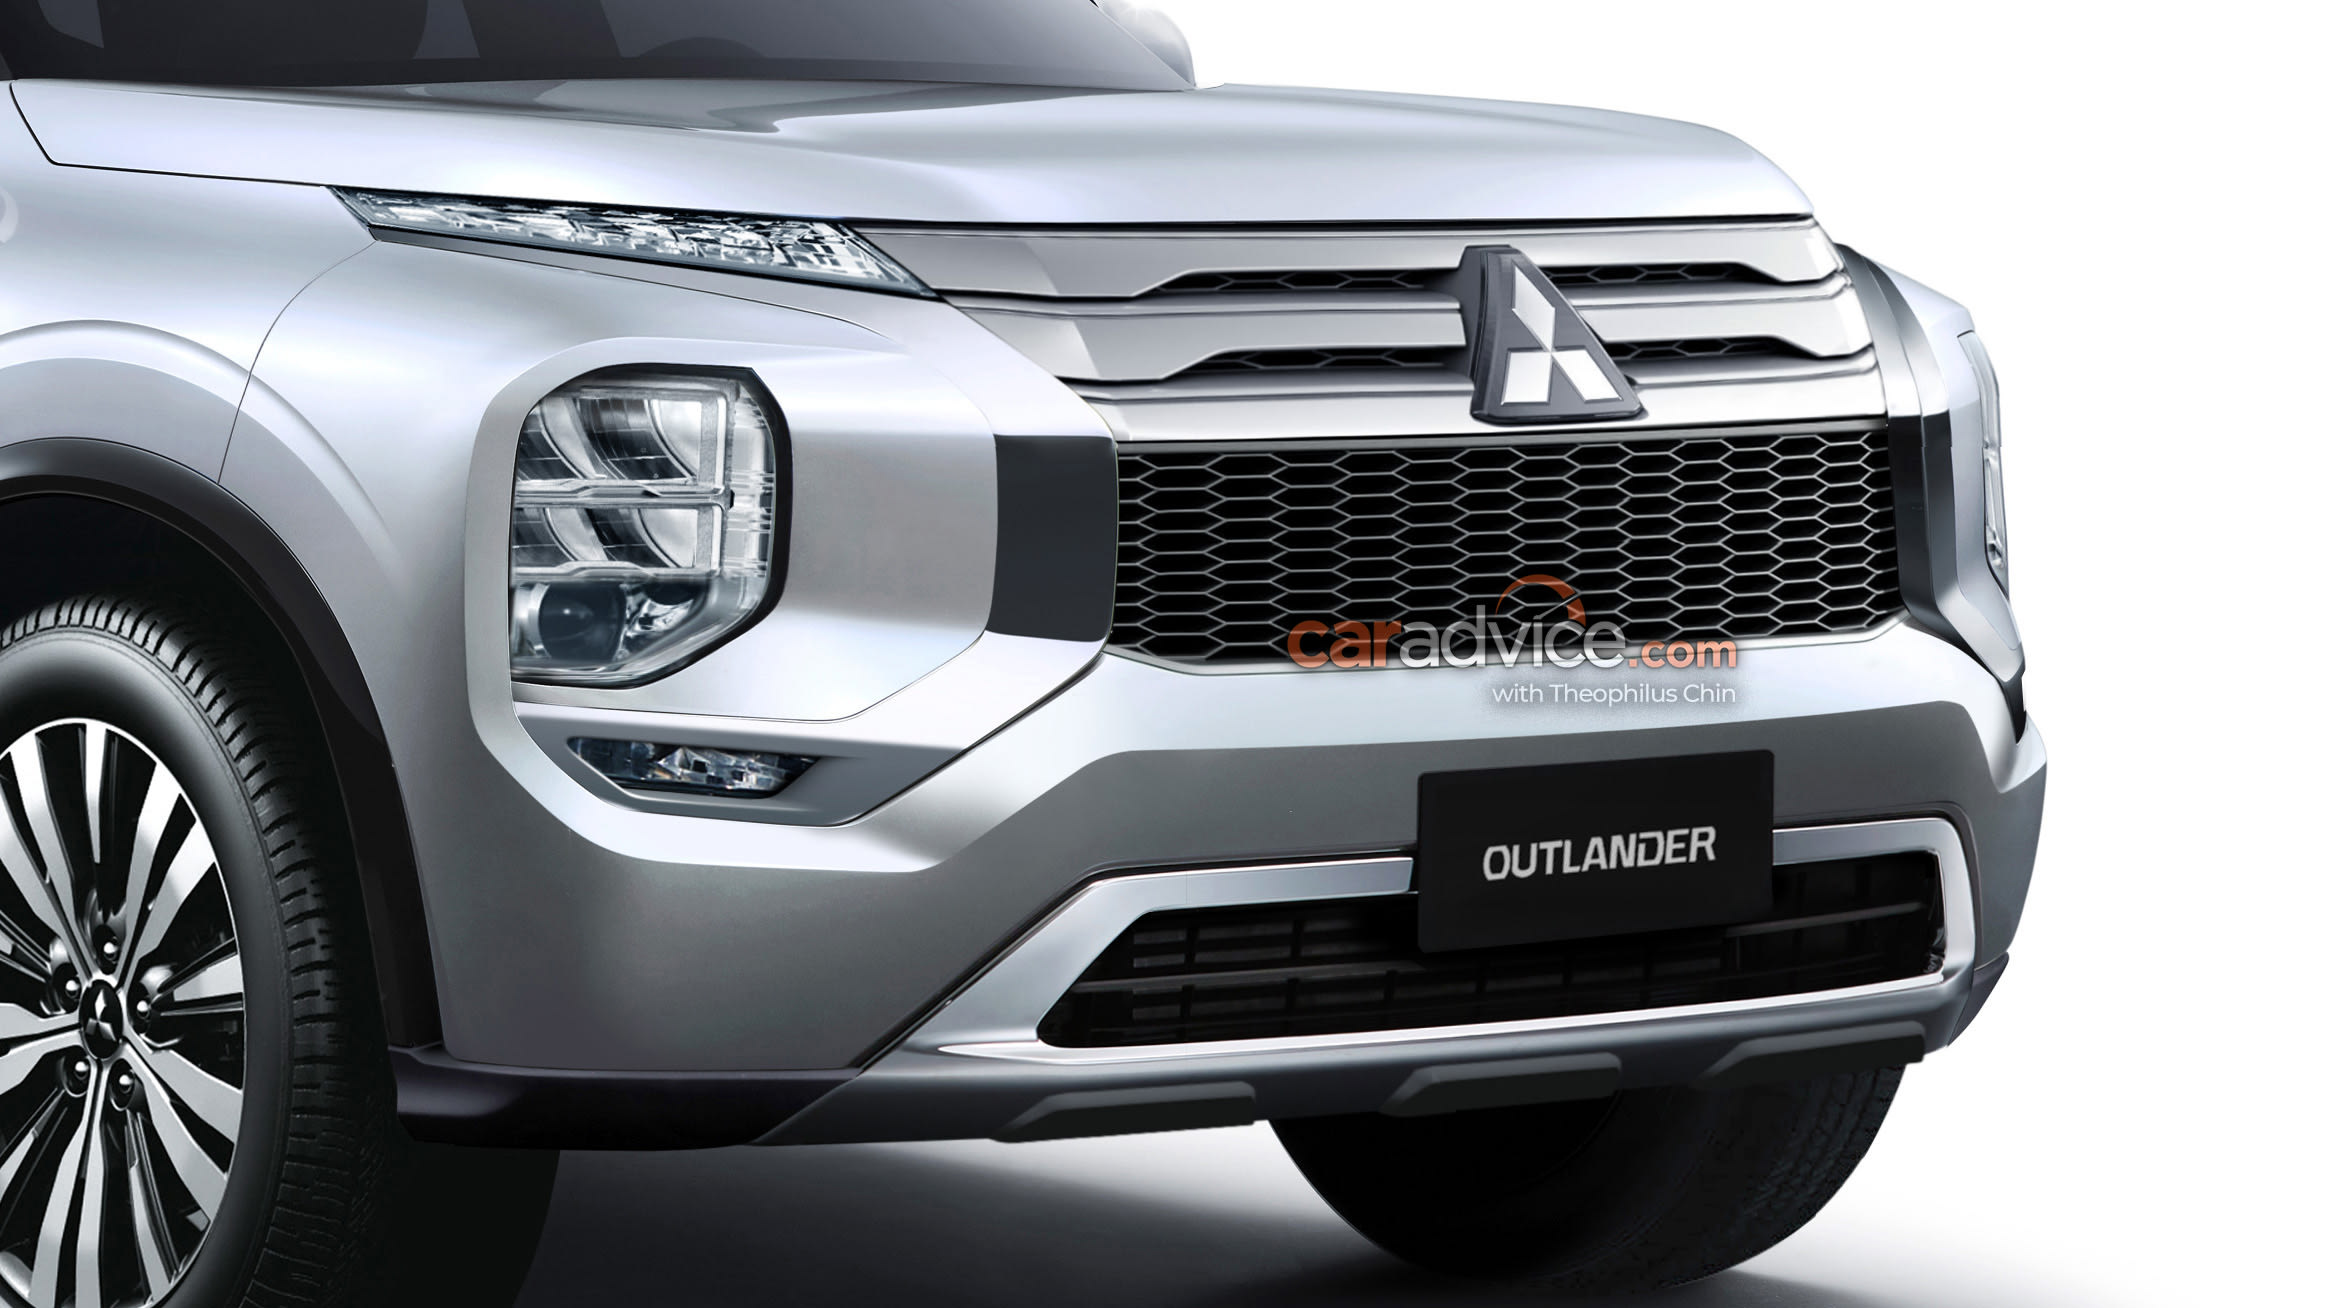 2021 Mitsubishi Outlander Previewed In New Renderings Caradvice